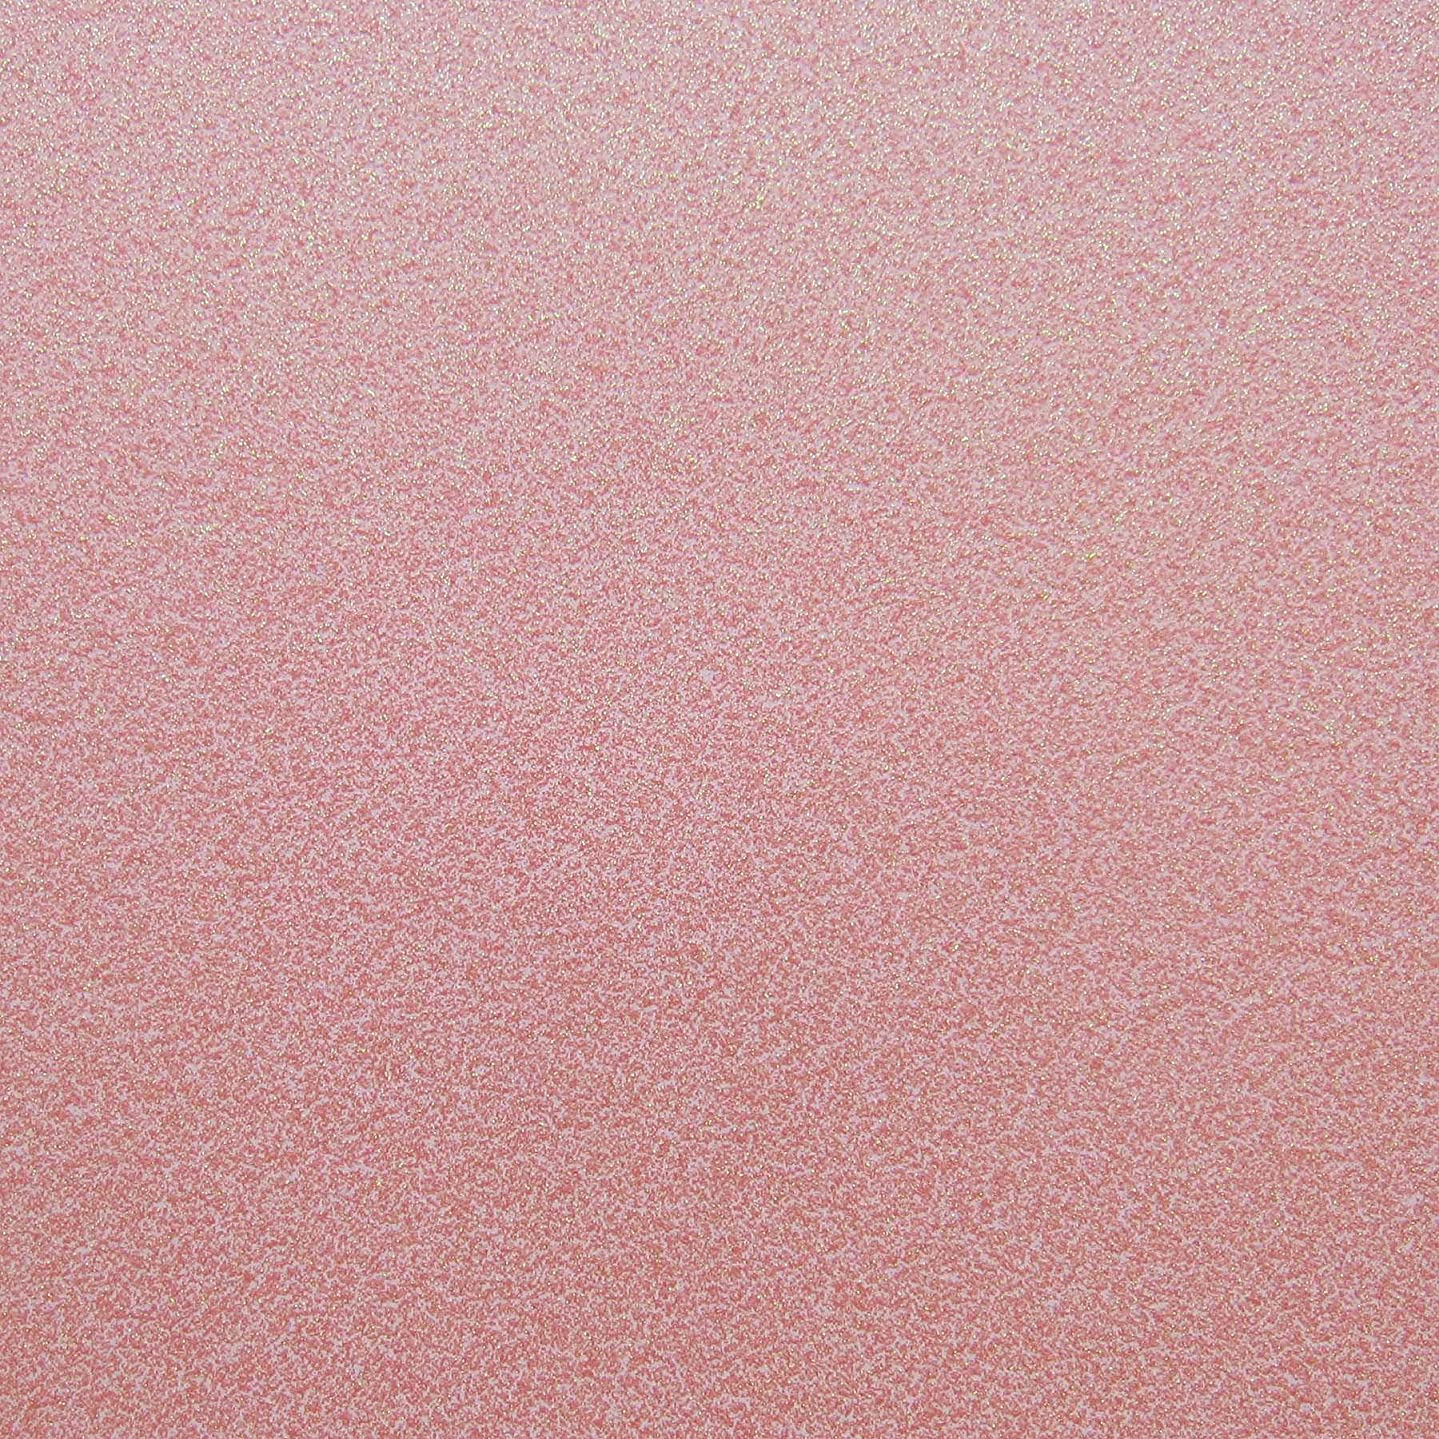 Best Creation 12-Inch by 12-Inch Glitter Cardstock, Sunset Peach